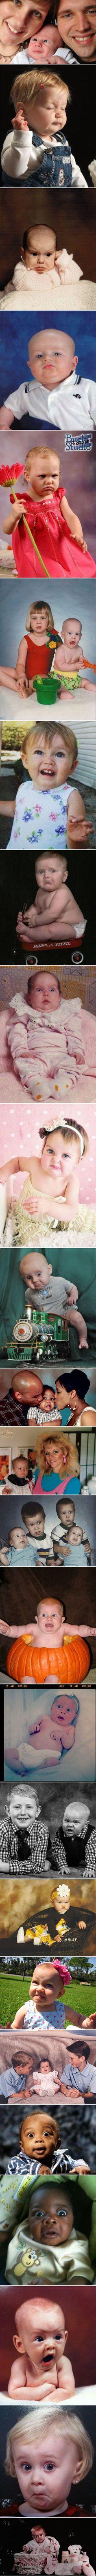 Funny kids and baby photographs taken at the perfectly wrong time. Can't stop laughing: Wrong Time, Perfectly Wrong, Funny Kids Pictures Humor, Funny Stuff, Funny Baby Picture, Funny Babys, Funny Babies